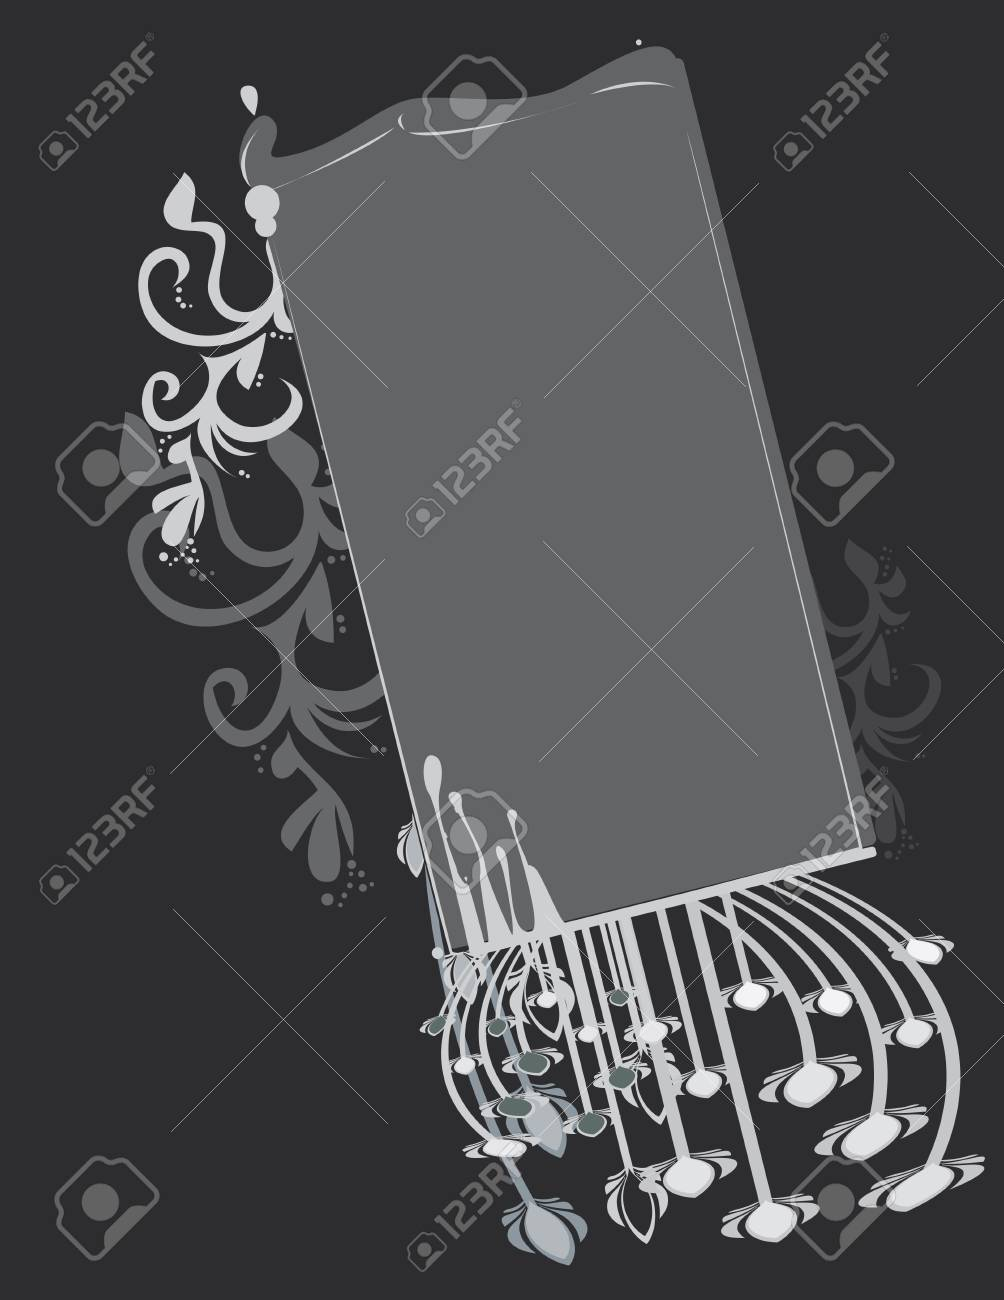 Gray abstract frame and background Stock Vector - 7315120